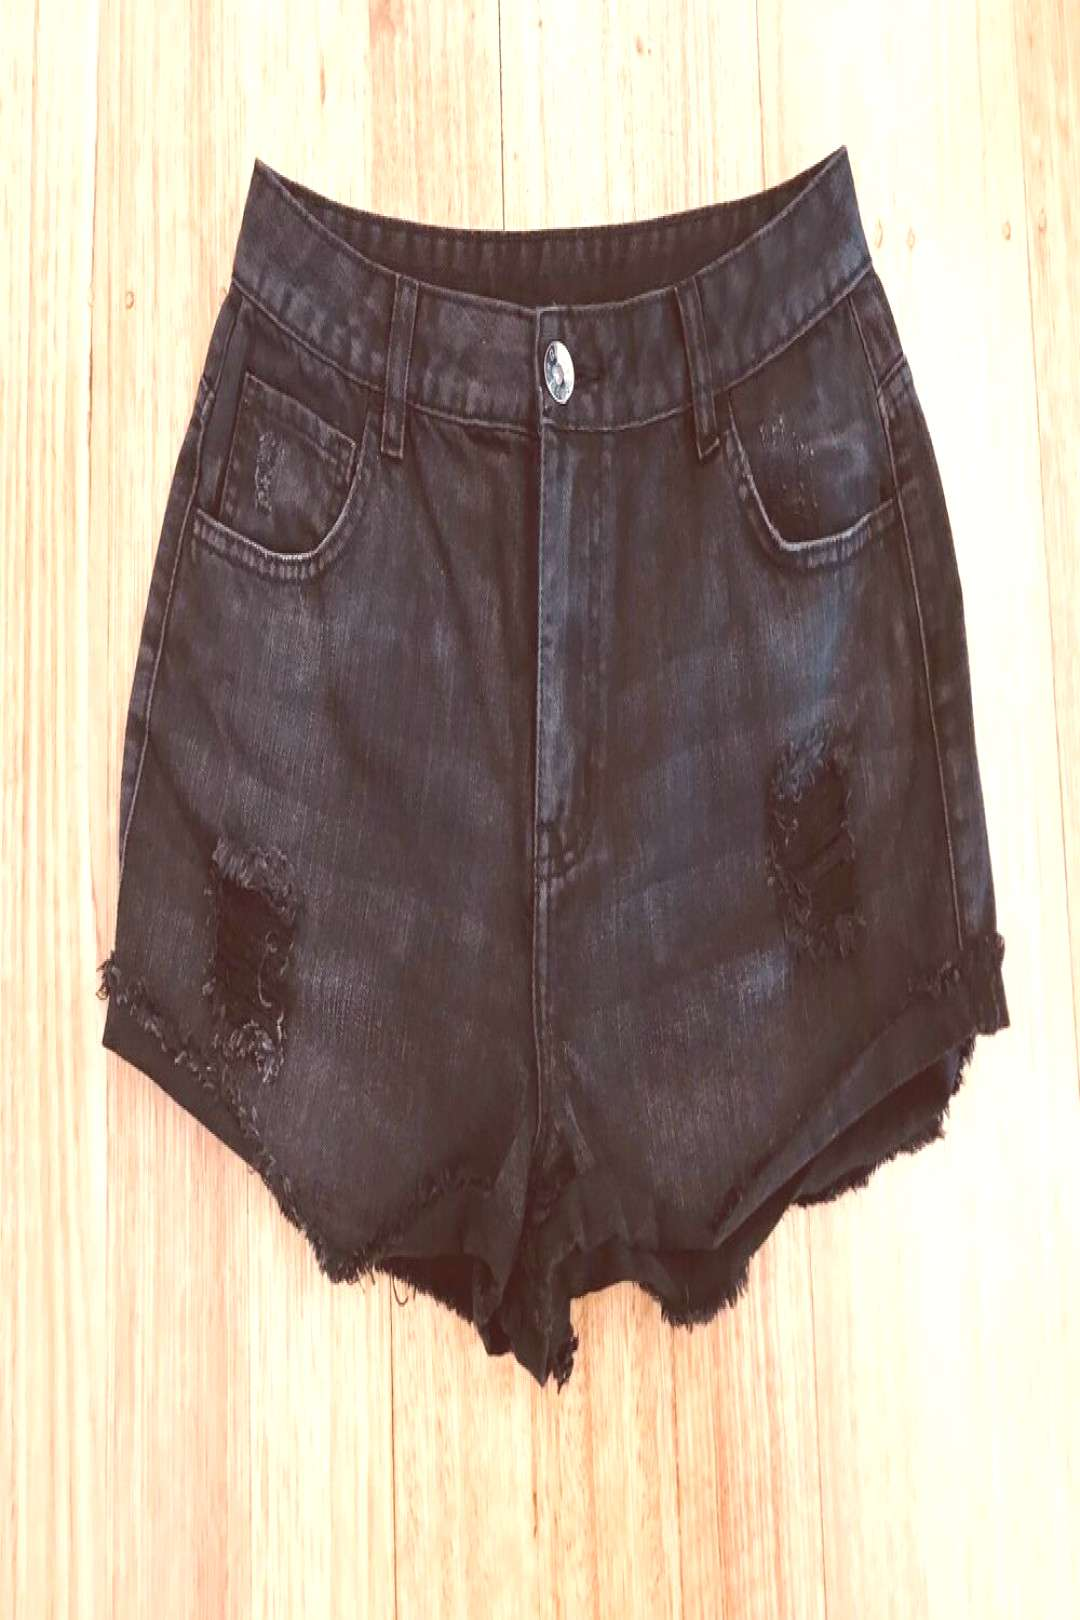 Girl Express-High Rise-Ripped Denim Shorts-Size 14